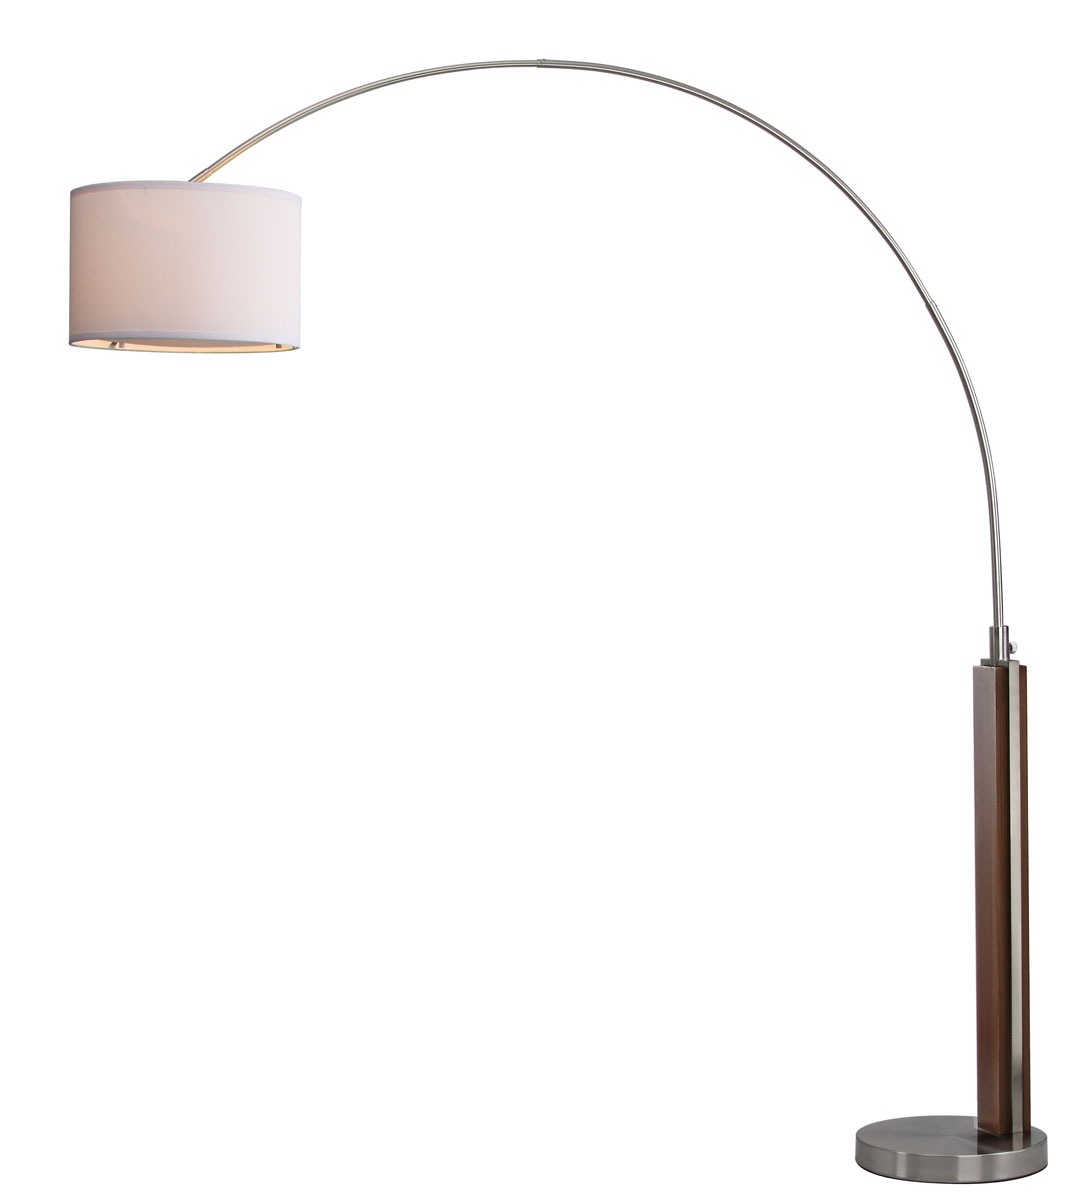 aries arc floor lamp lit4354a - Arc Floor Lamps